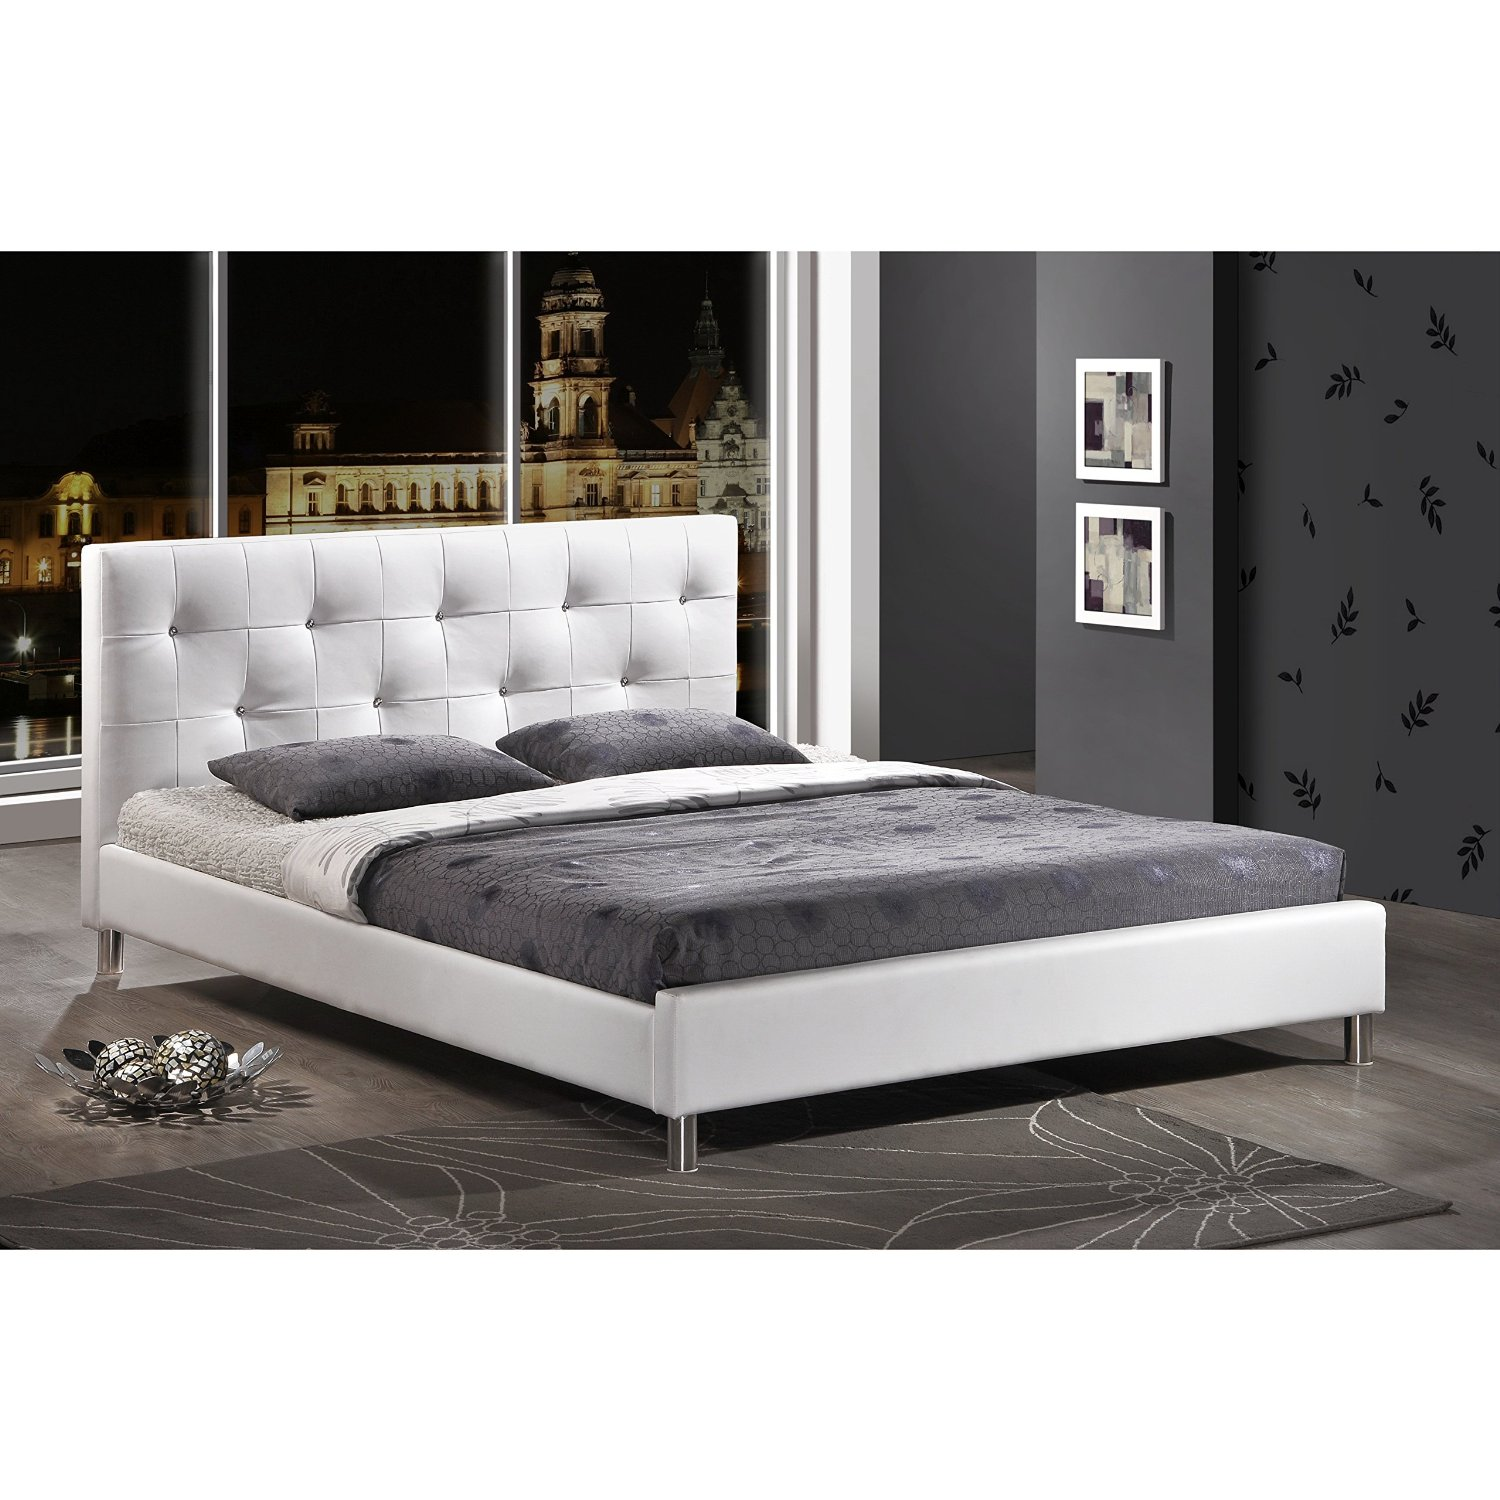 Metro Shop Barbara White Modern King-size Bed with Crystal Button Tufting-Barbara White Tufted Upholstered King Size Bed